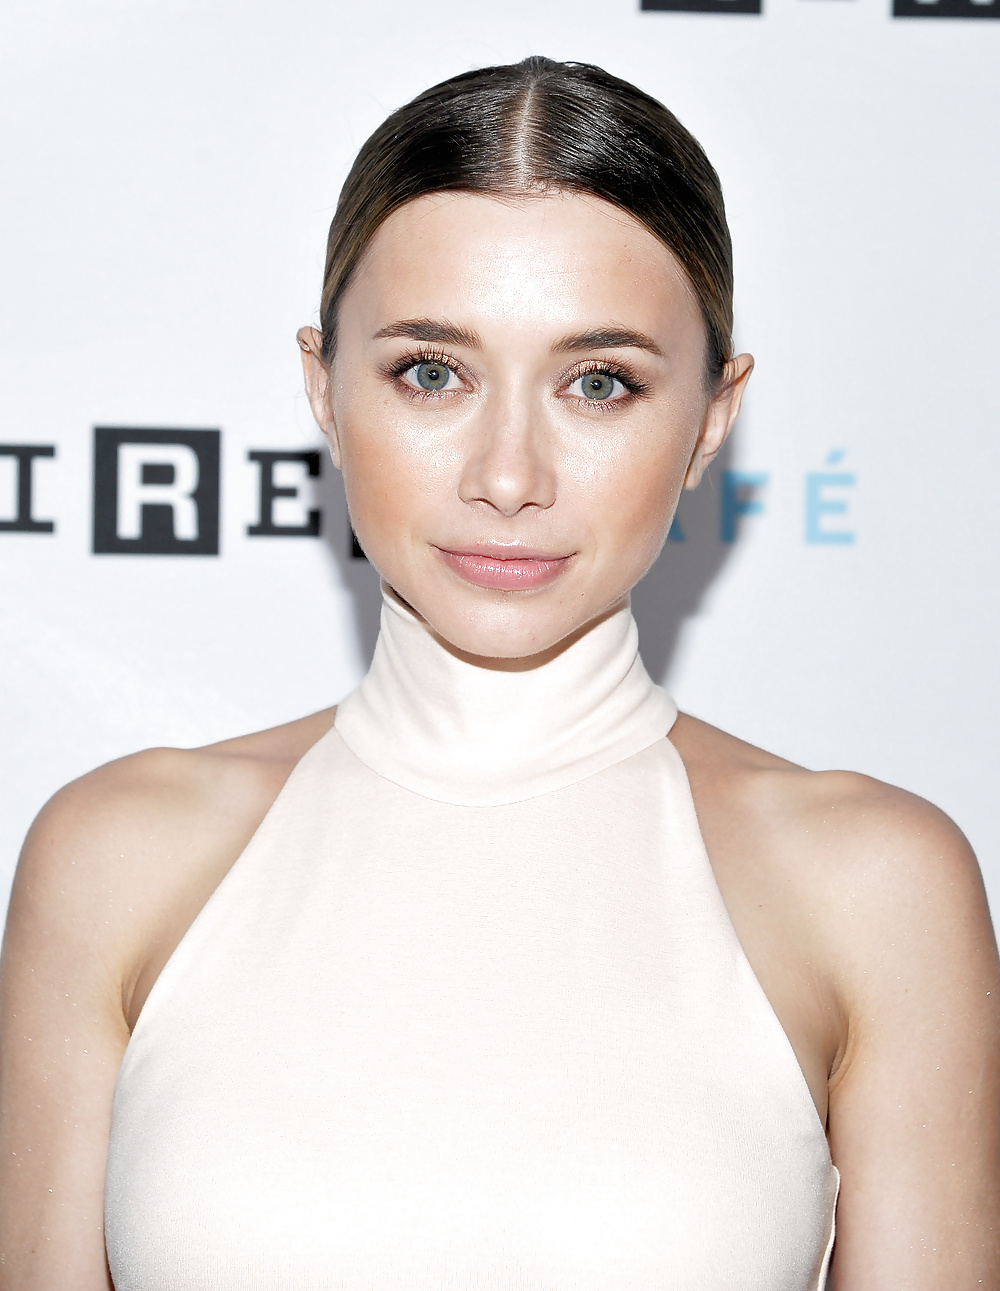 Olesya Porn see and save as olesya rulin porn pict - xhams.gesek